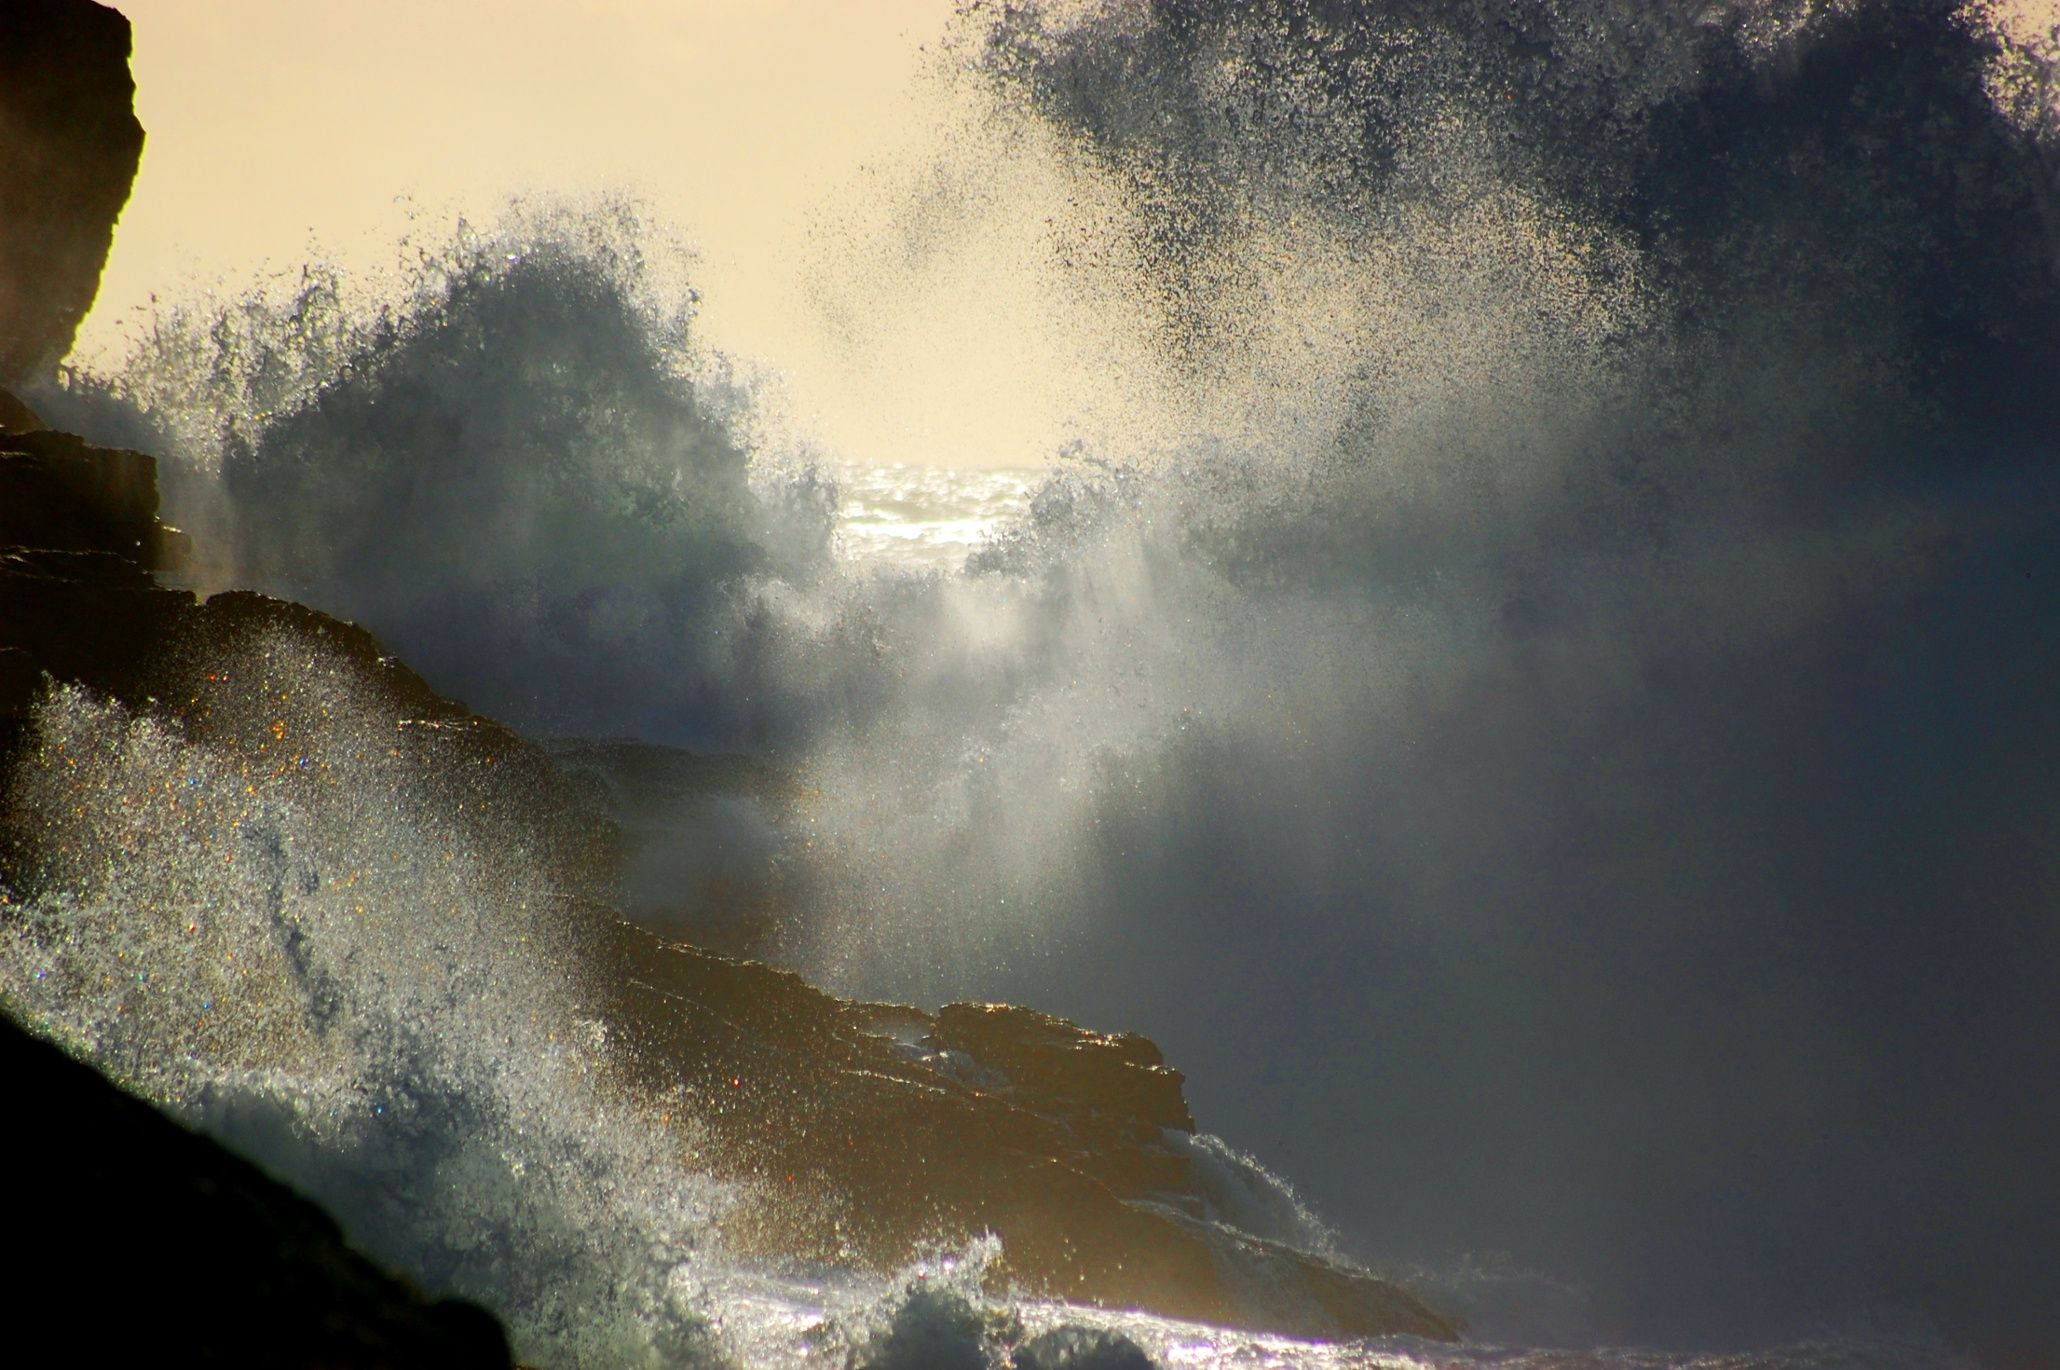 Coastline Captured In Atmospheric Photos For Rnli Contest In  # Magasins Fly A Colmac